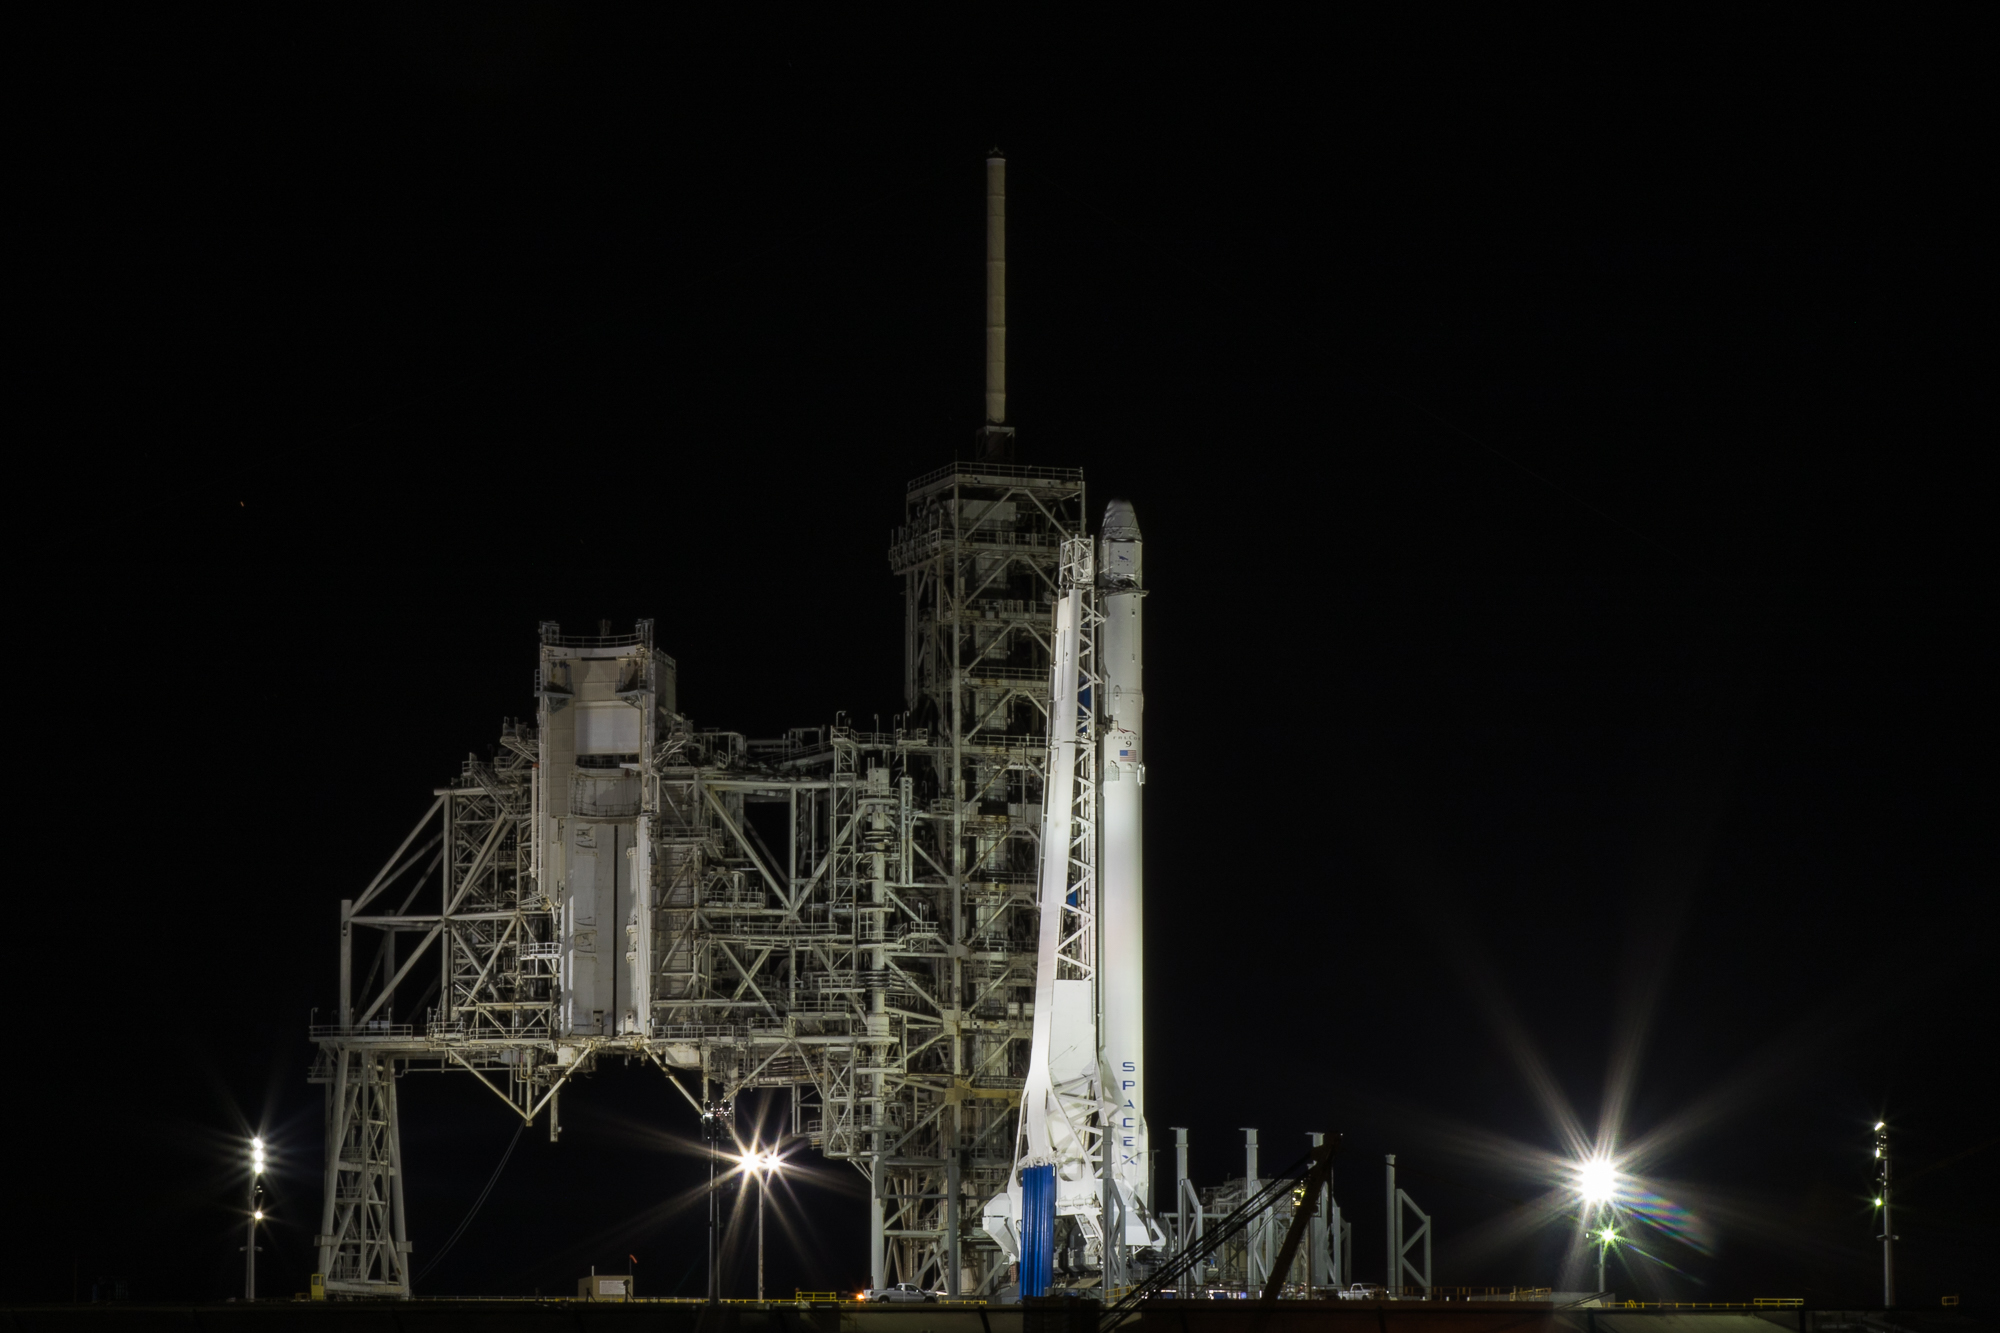 Michael Seeley Falcon 9 LC 39A